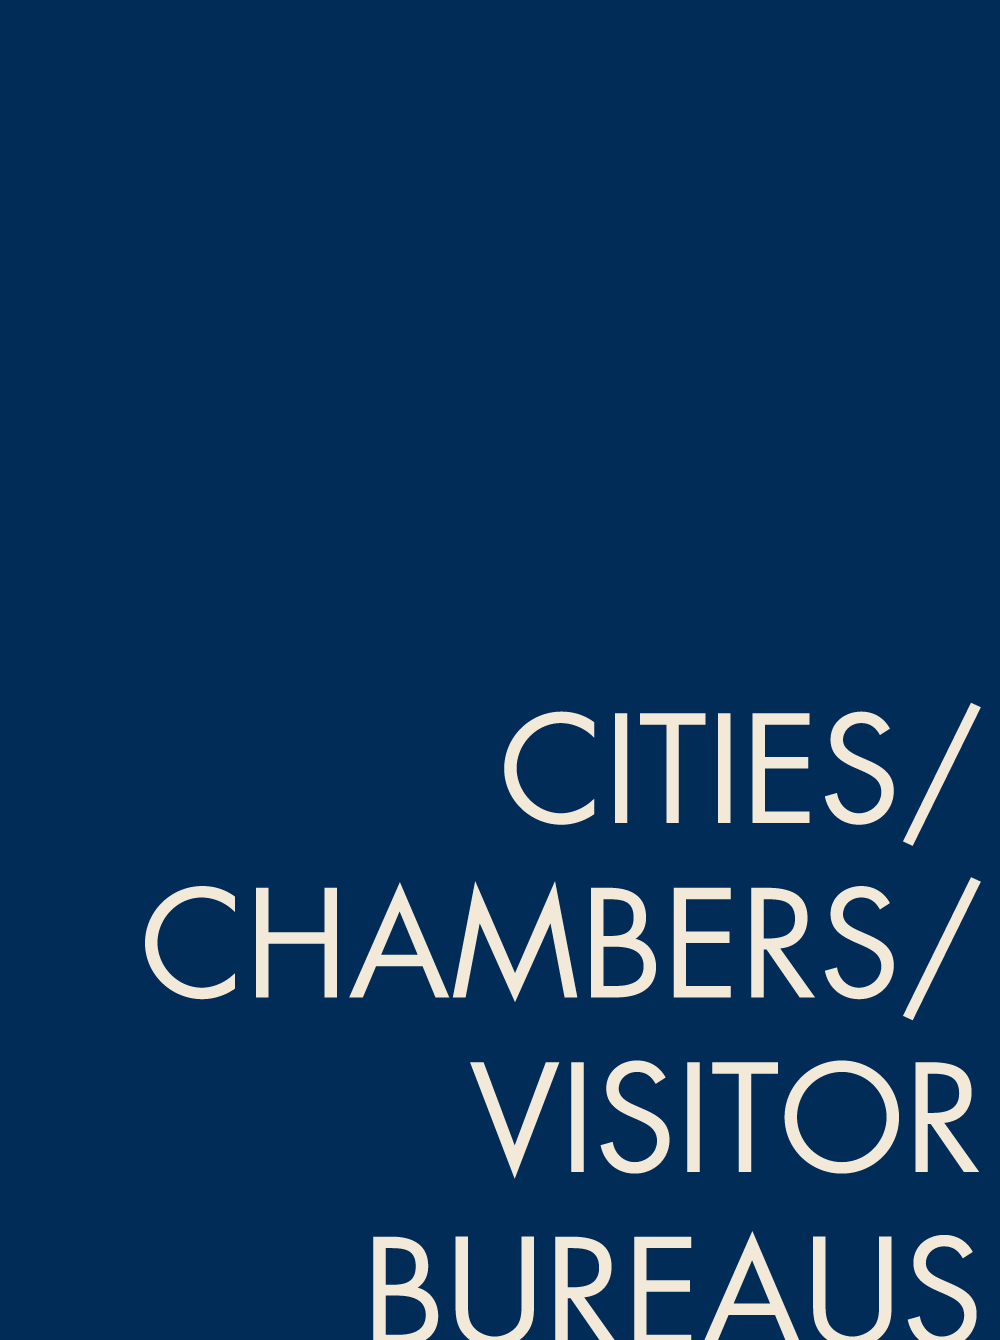 CITIES / CHAMBERS / VISITOR BUREAUS HUNTSVILLE CHAMBER OF COMMERCE BRYAN/COLLEGE STATION CVB BRAZOS VALLEY CHAMBER OF COMMERCE